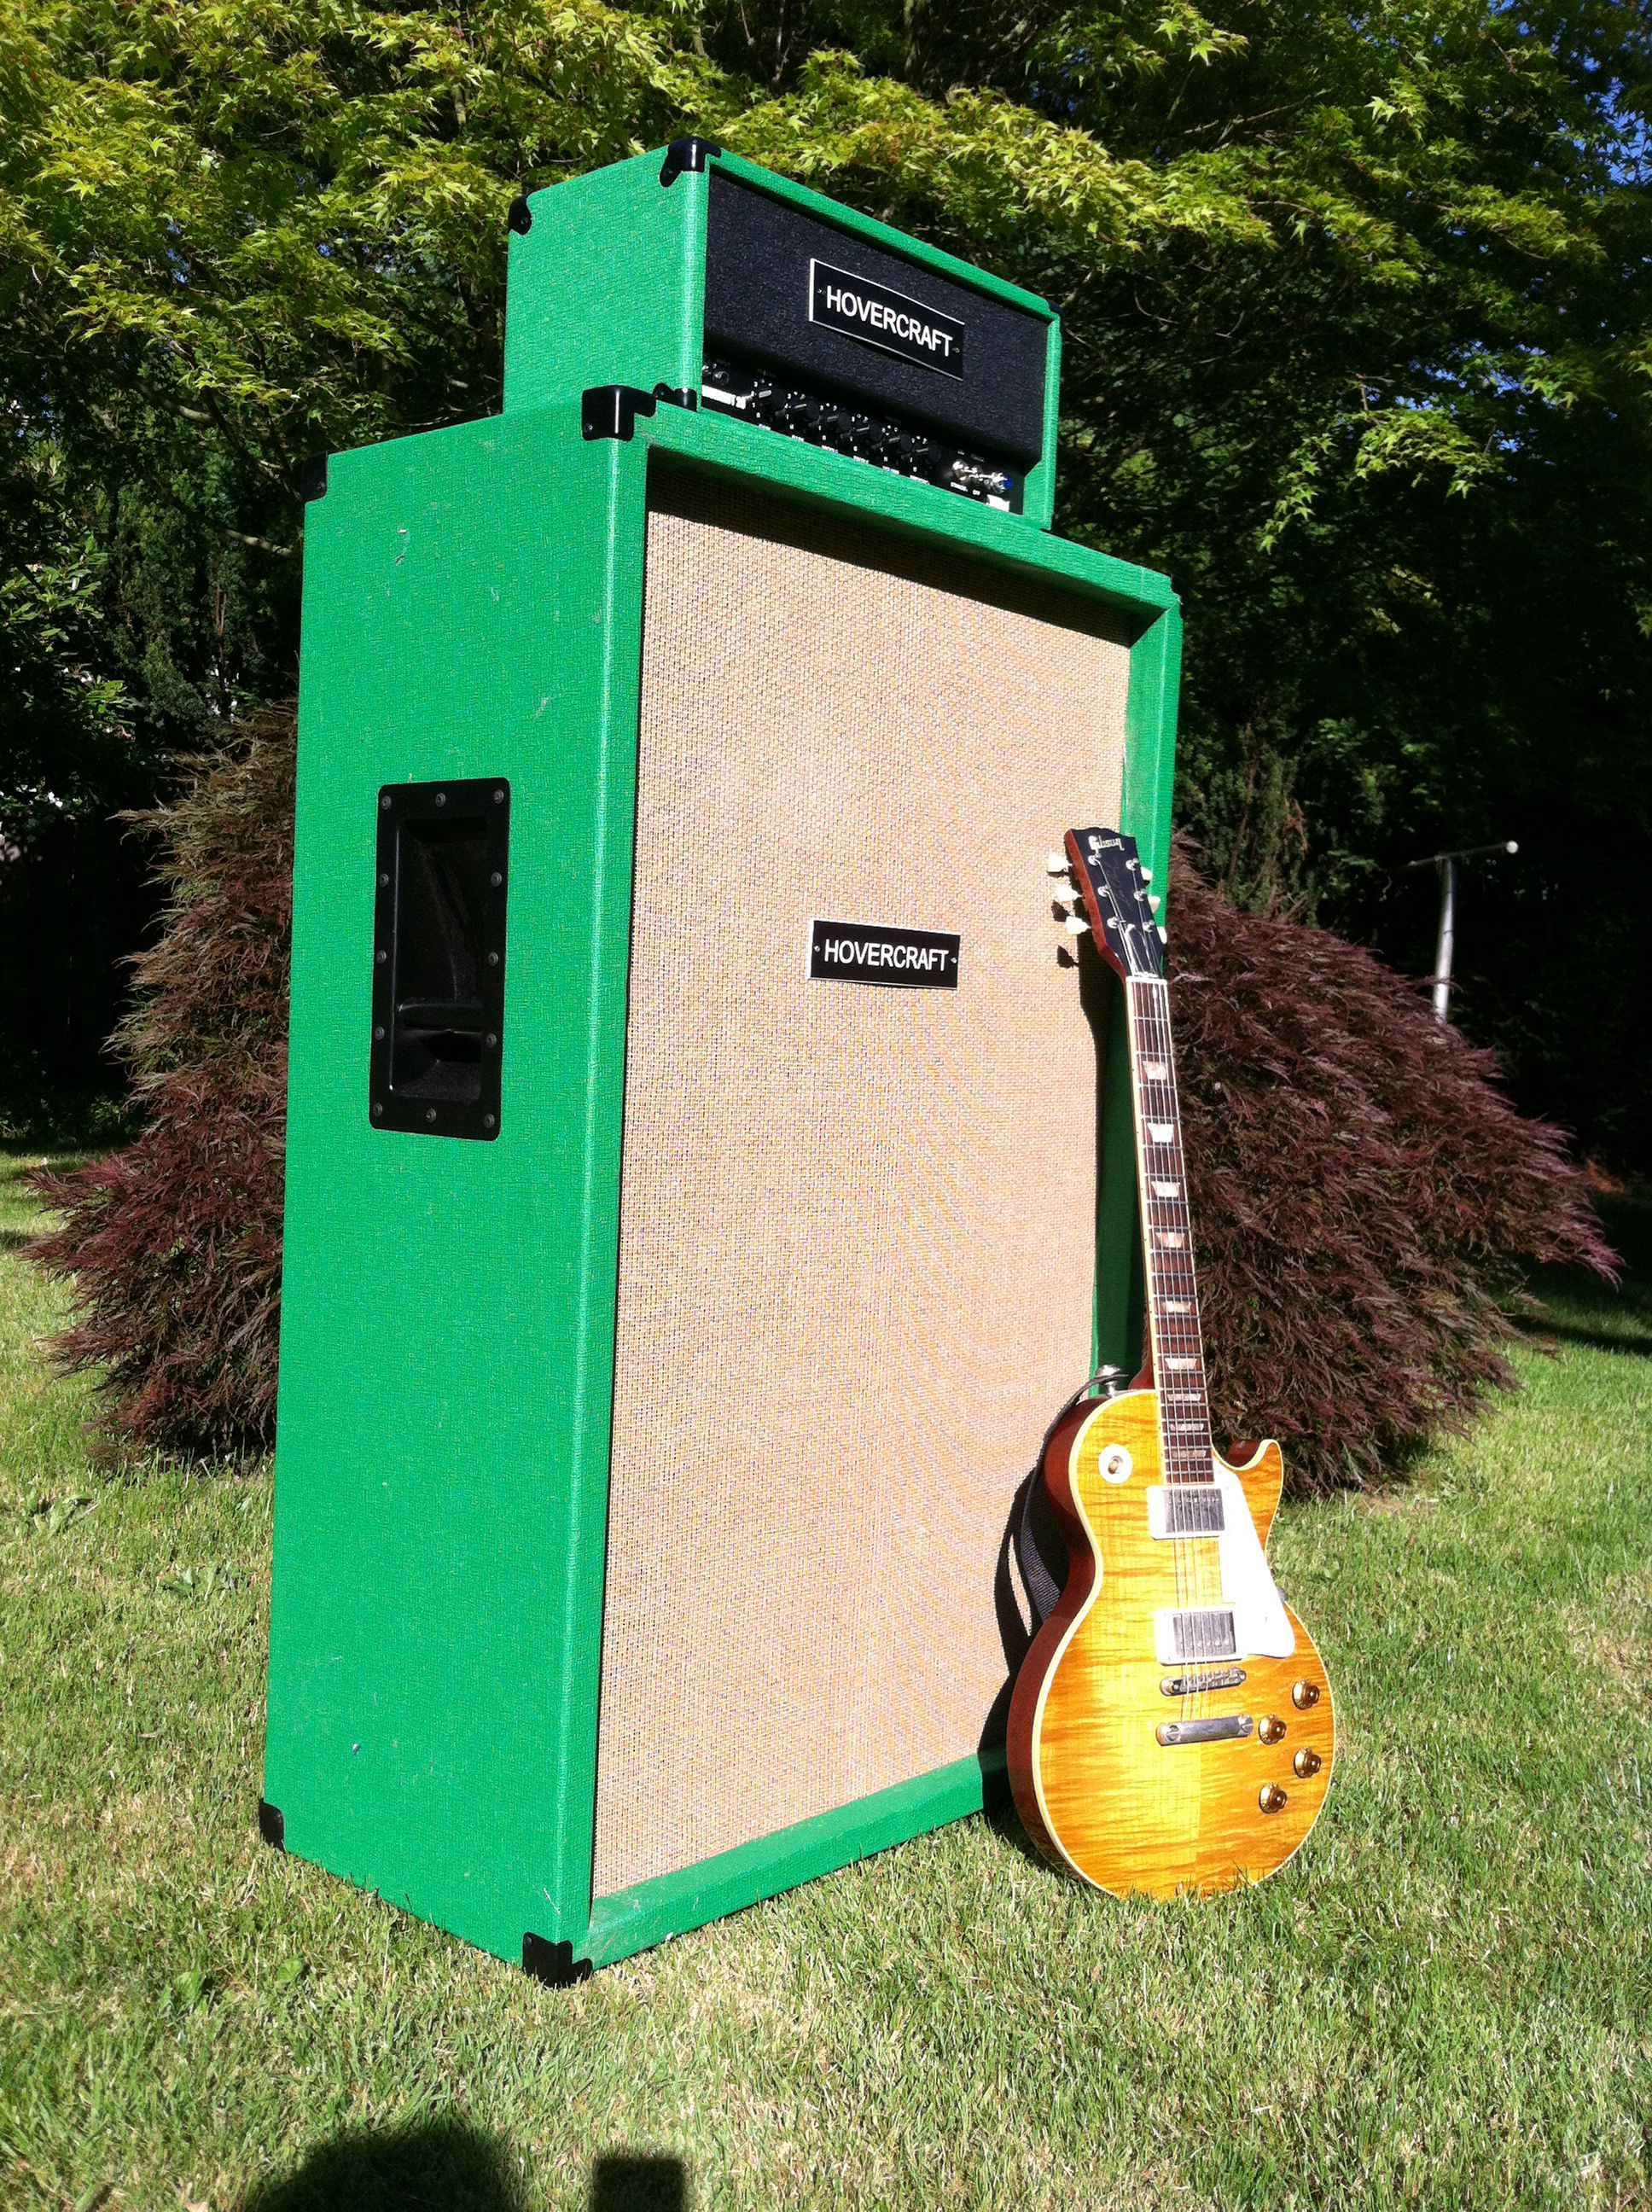 Hovercraft Dwarvenaut 20 And 6x12 Cabinet Trimmed In Matamp Green